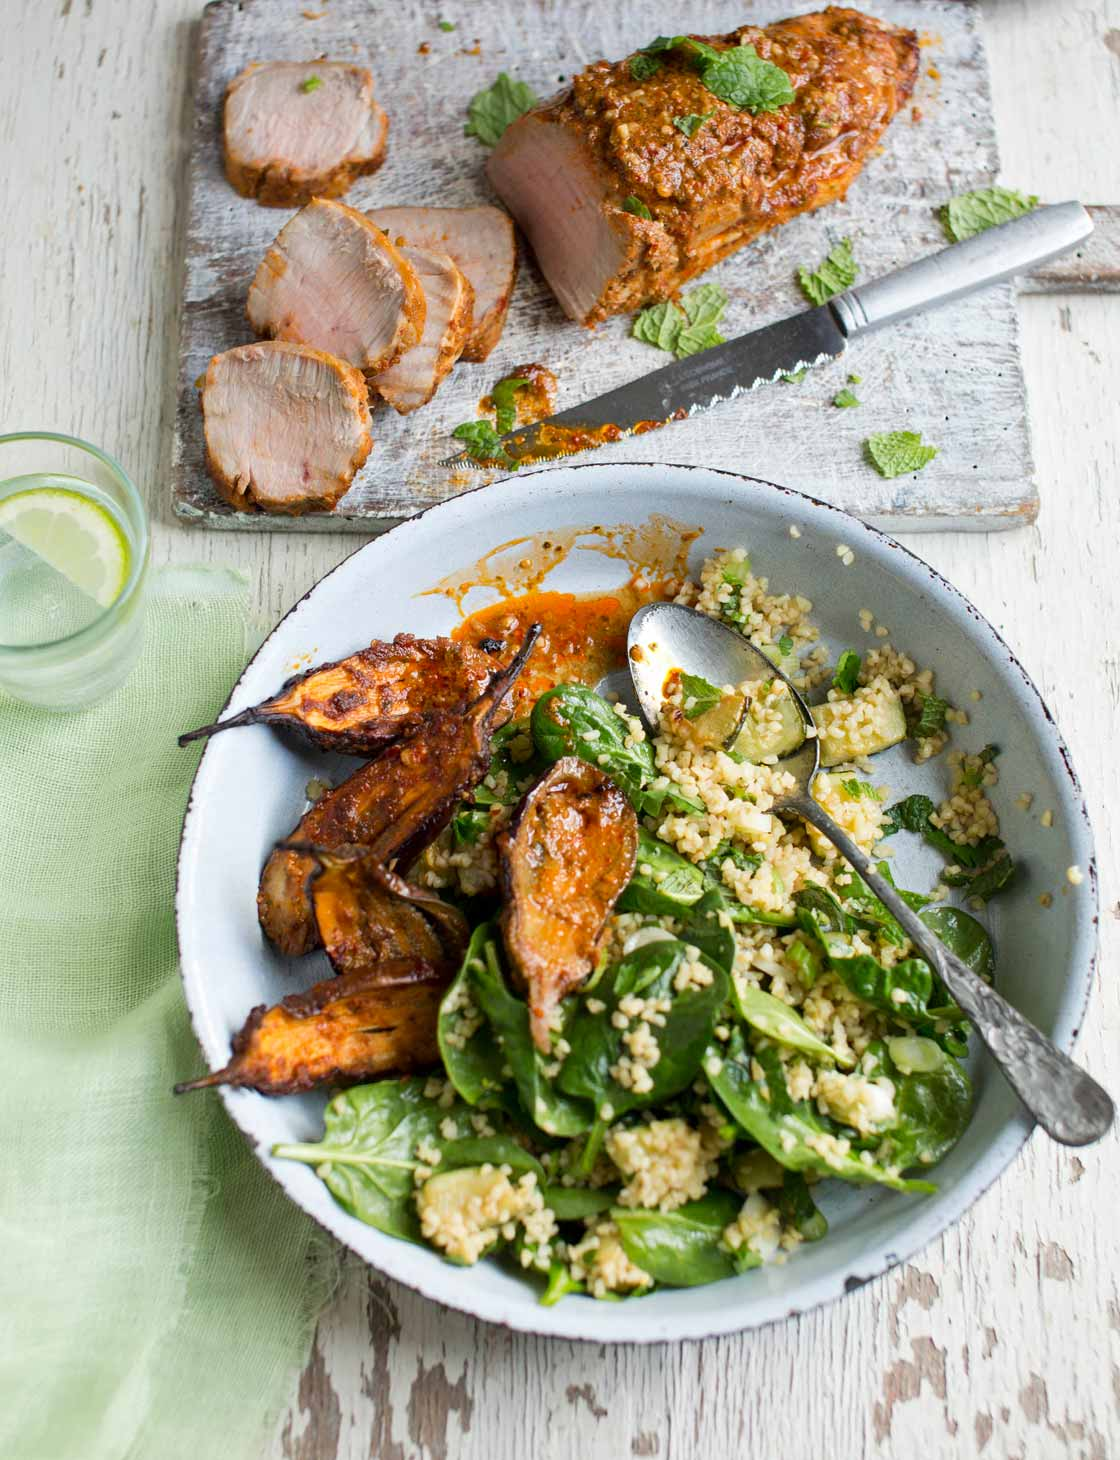 Harissa-lemon pork with bulgur wheat salad